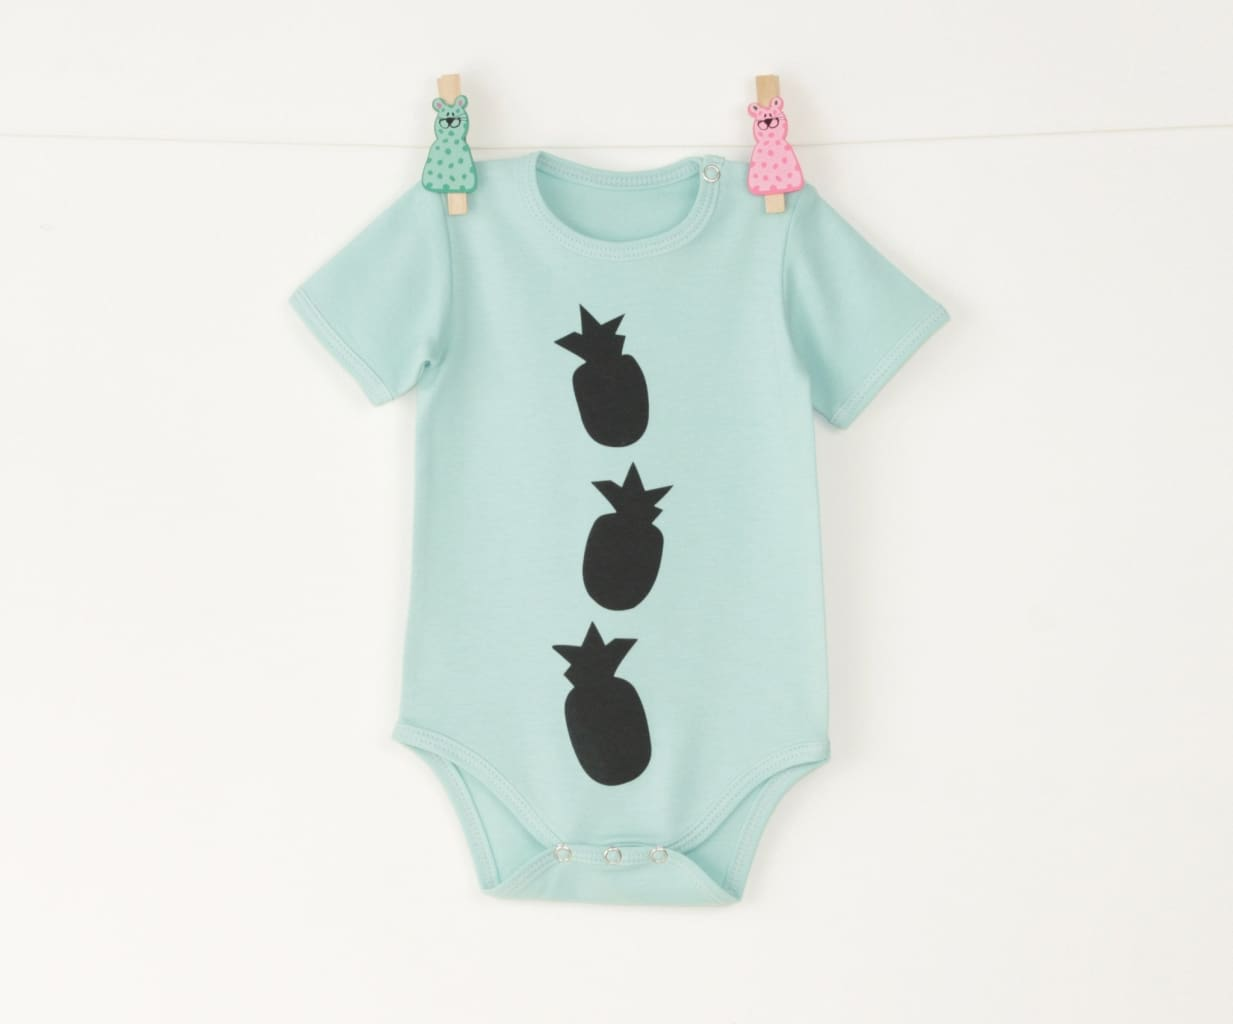 Baby Onesie Pineapple - 1 - 3 Mnth (H-62 Cm) / Turquoise / Us - Baby Clothes